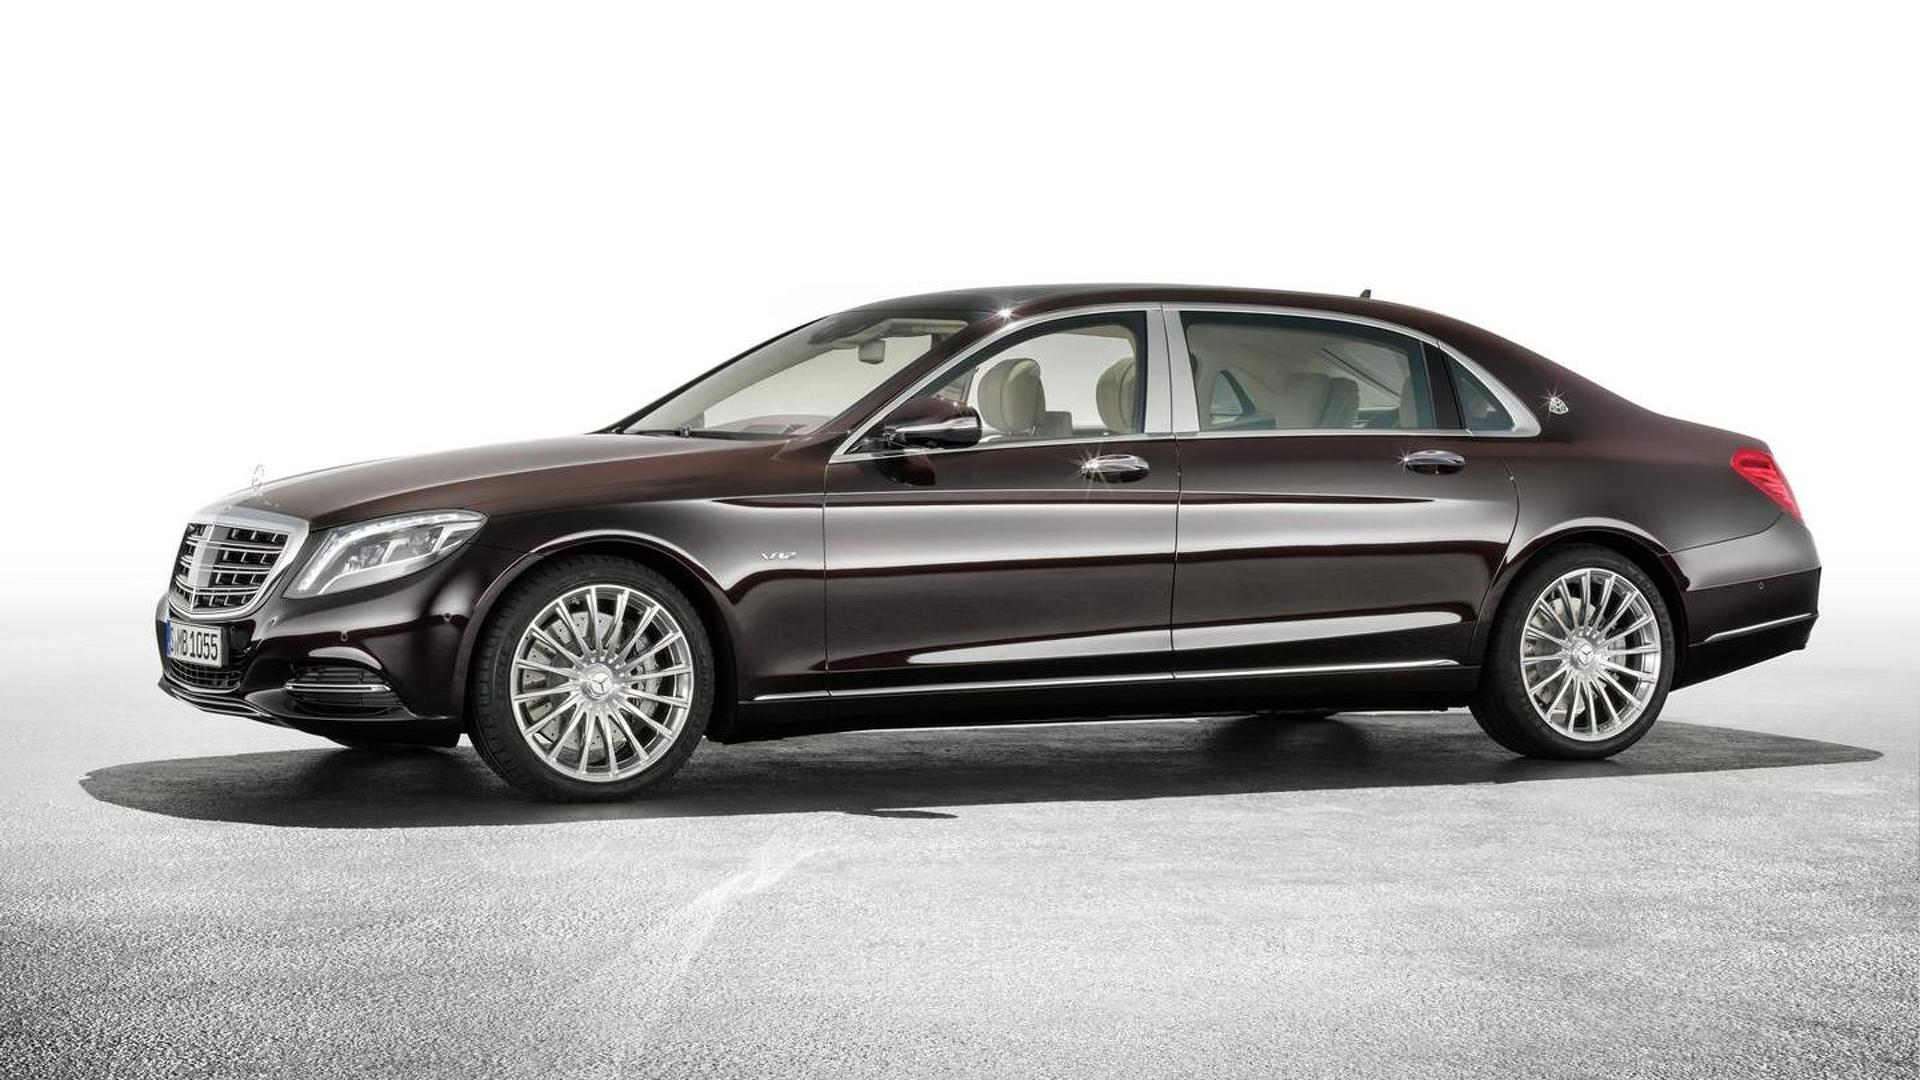 Mercedes-Maybach S600 priced from €187,841